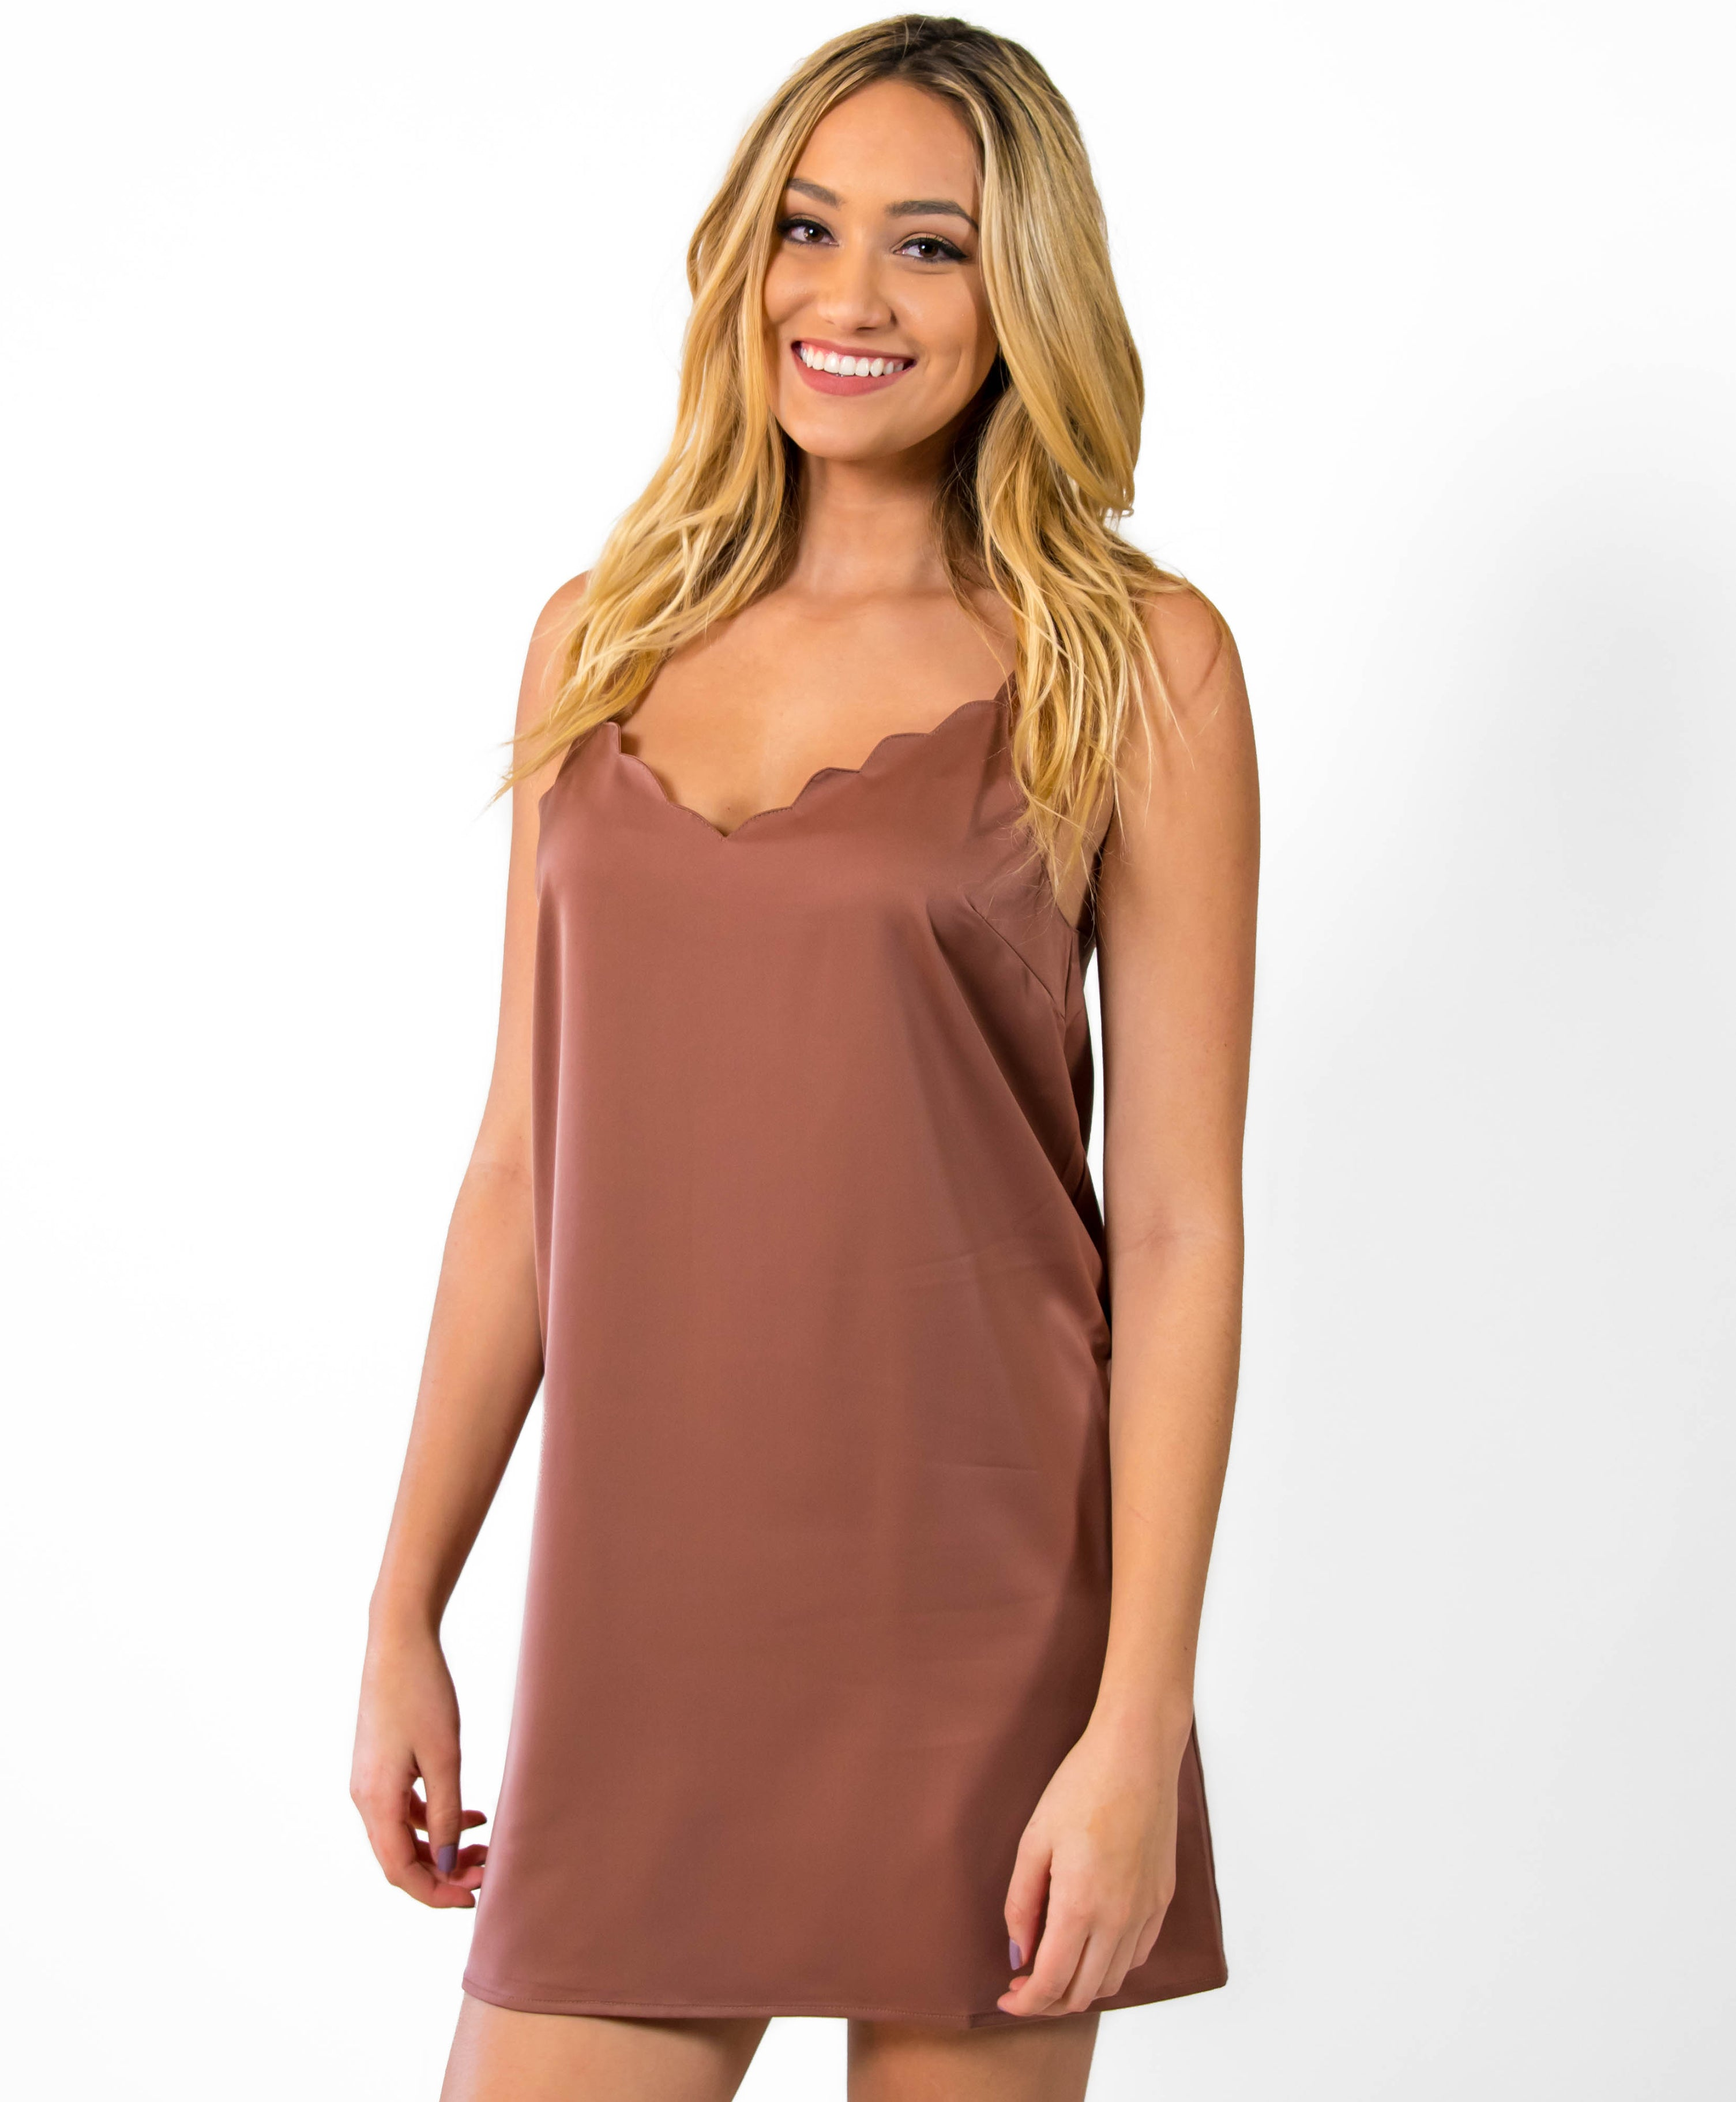 Darla | Dress | Bailey Nicole - Women's Clothes for All Occasions